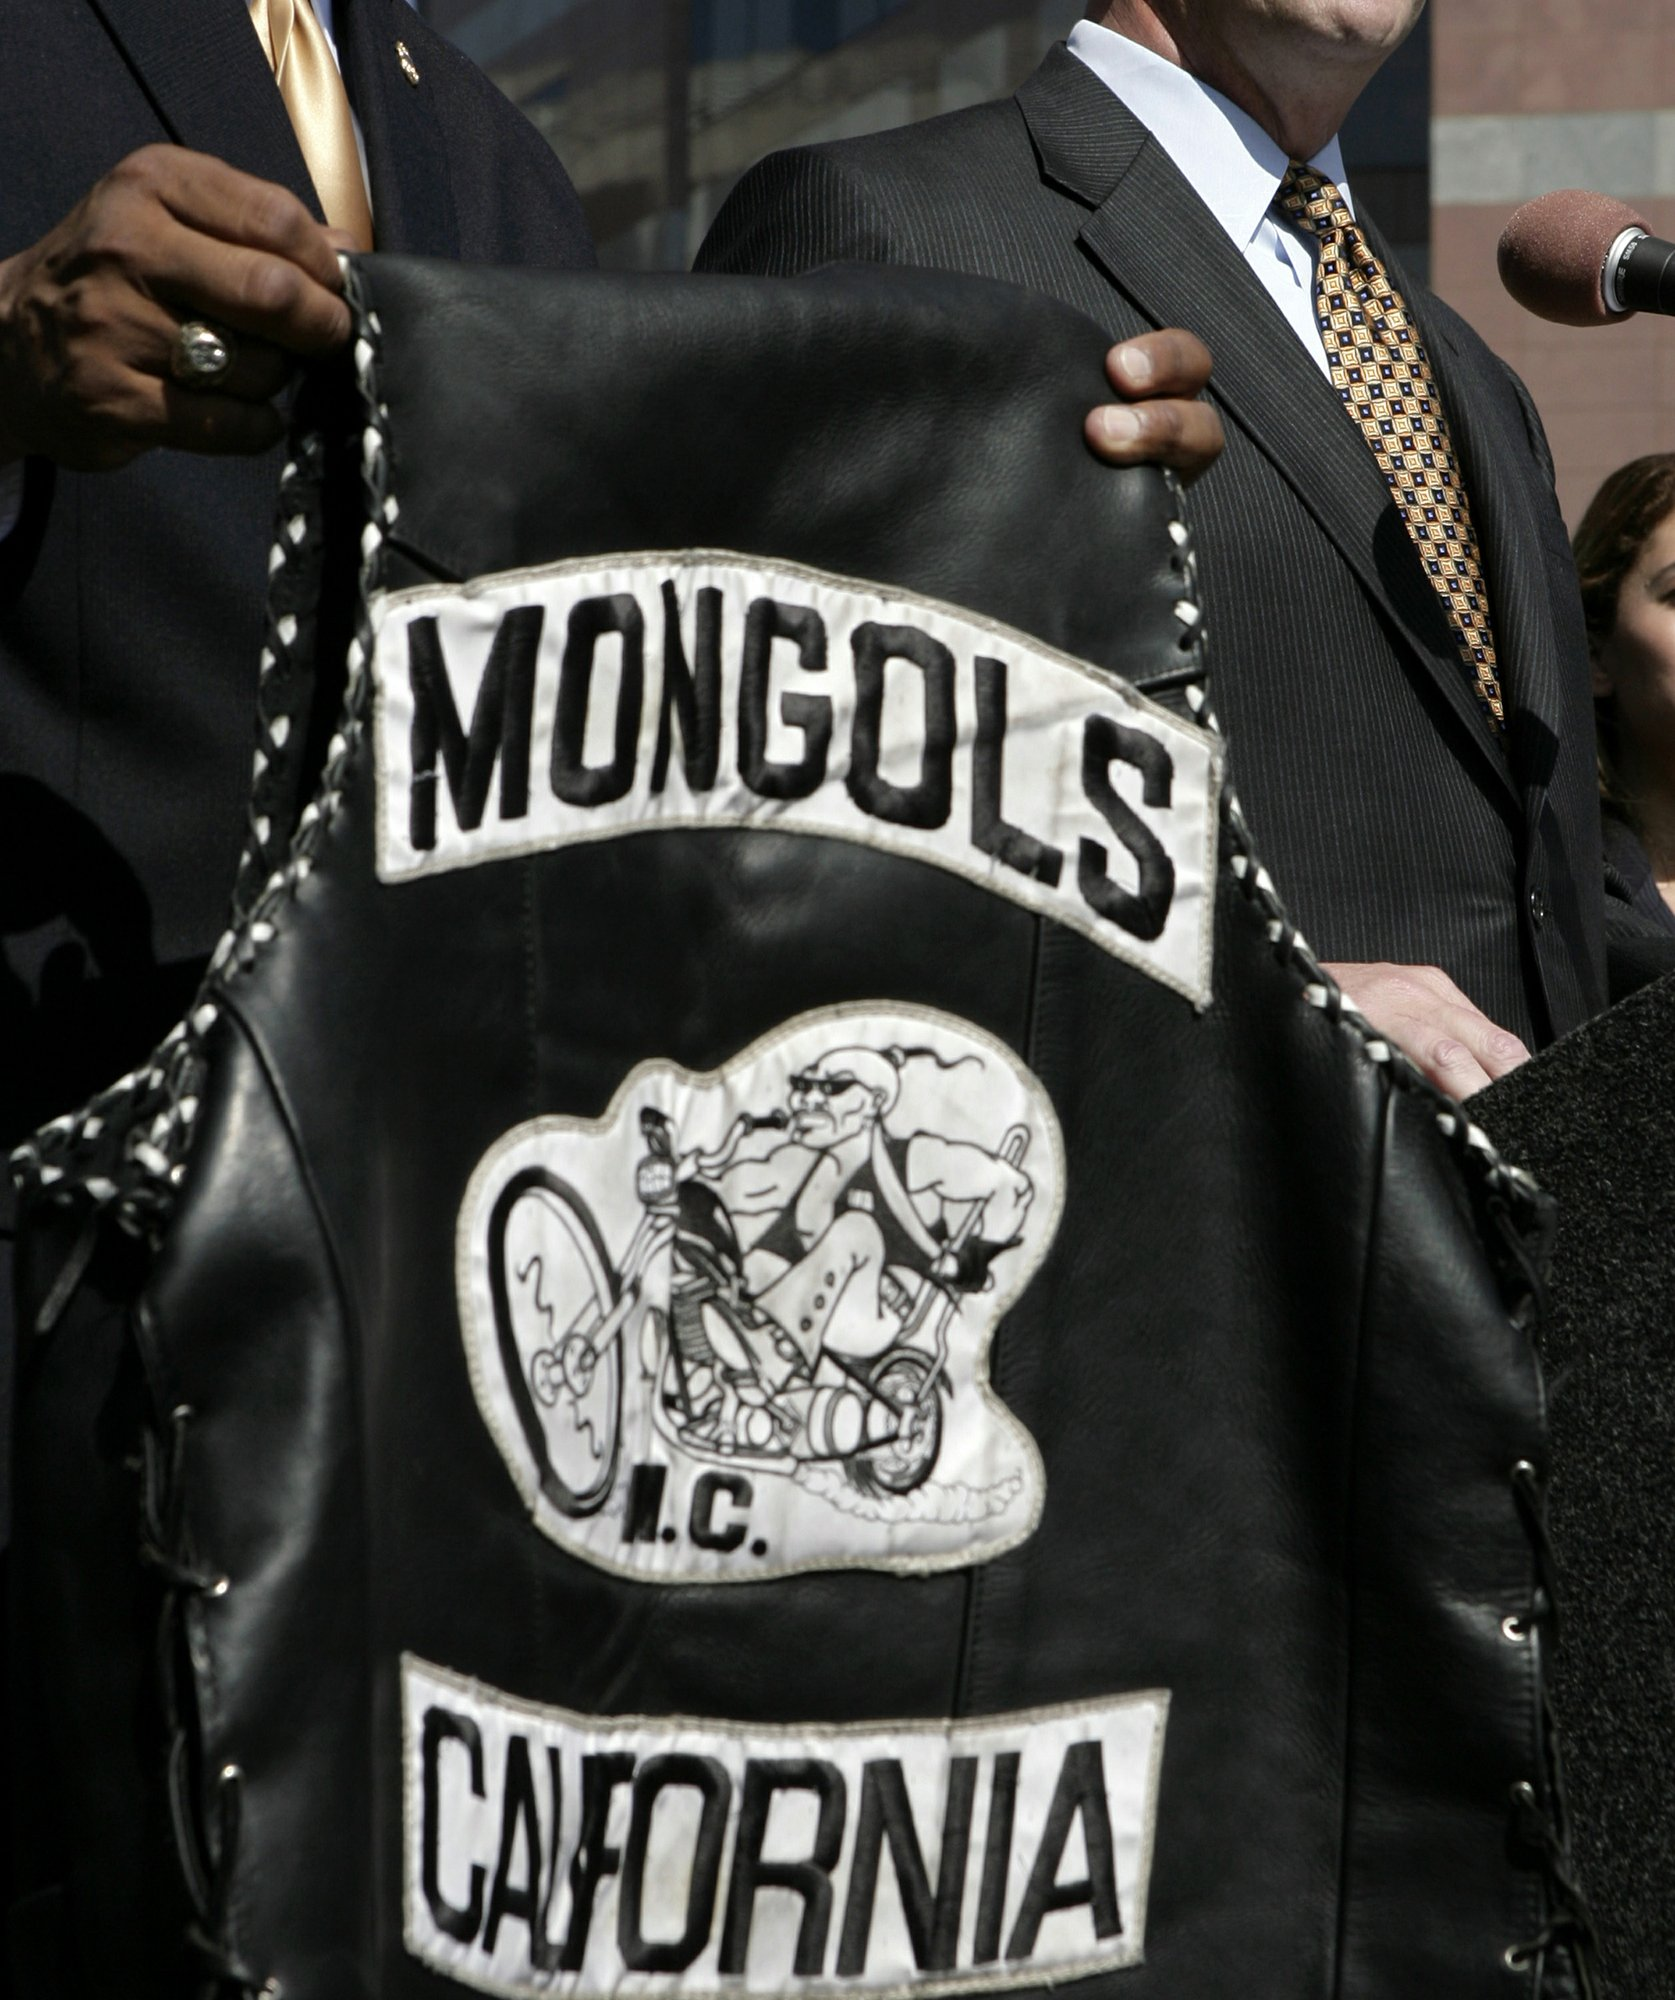 Mongols biker club fined $500,000 but keeps logo trademarks